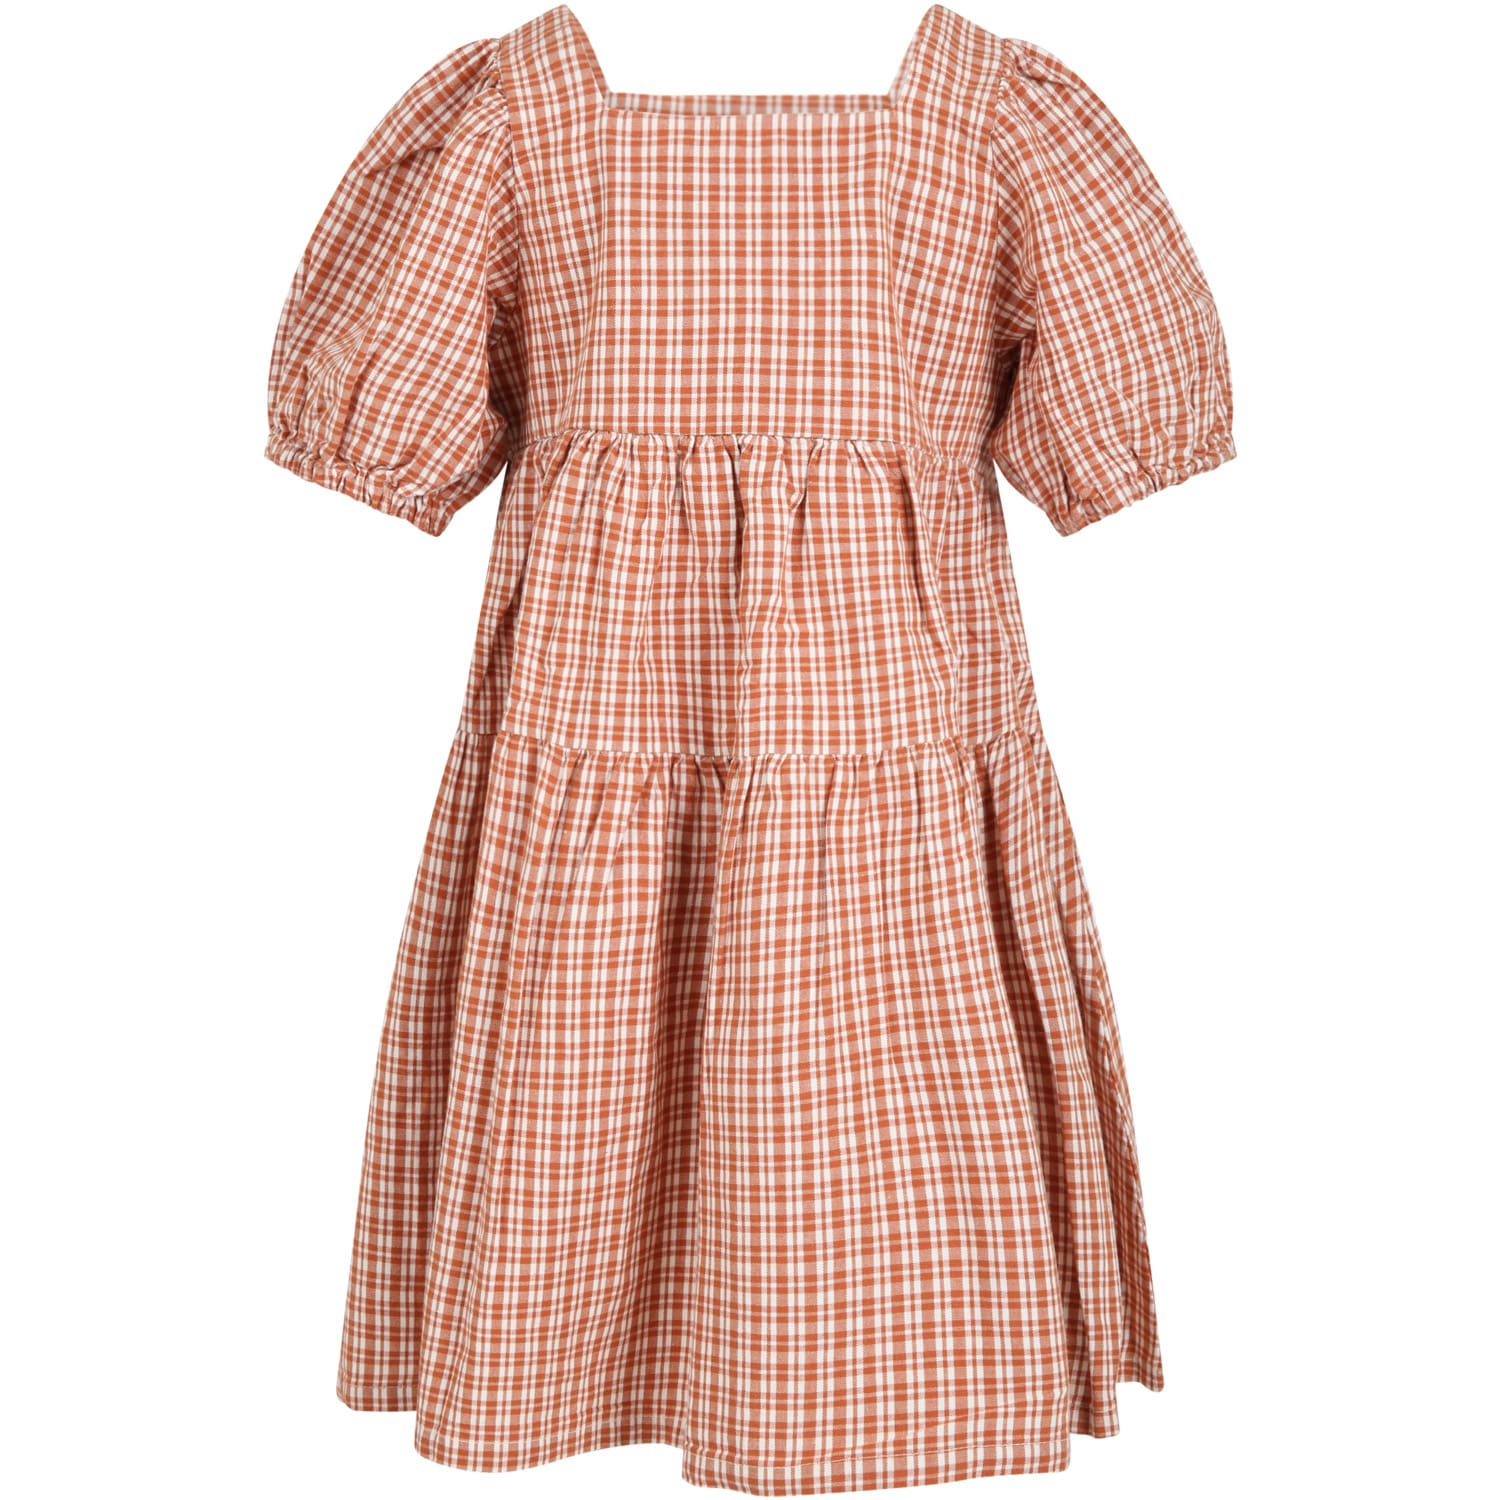 Buy The New Society Multicolor arlette Dress For Girl online, shop The New Society with free shipping